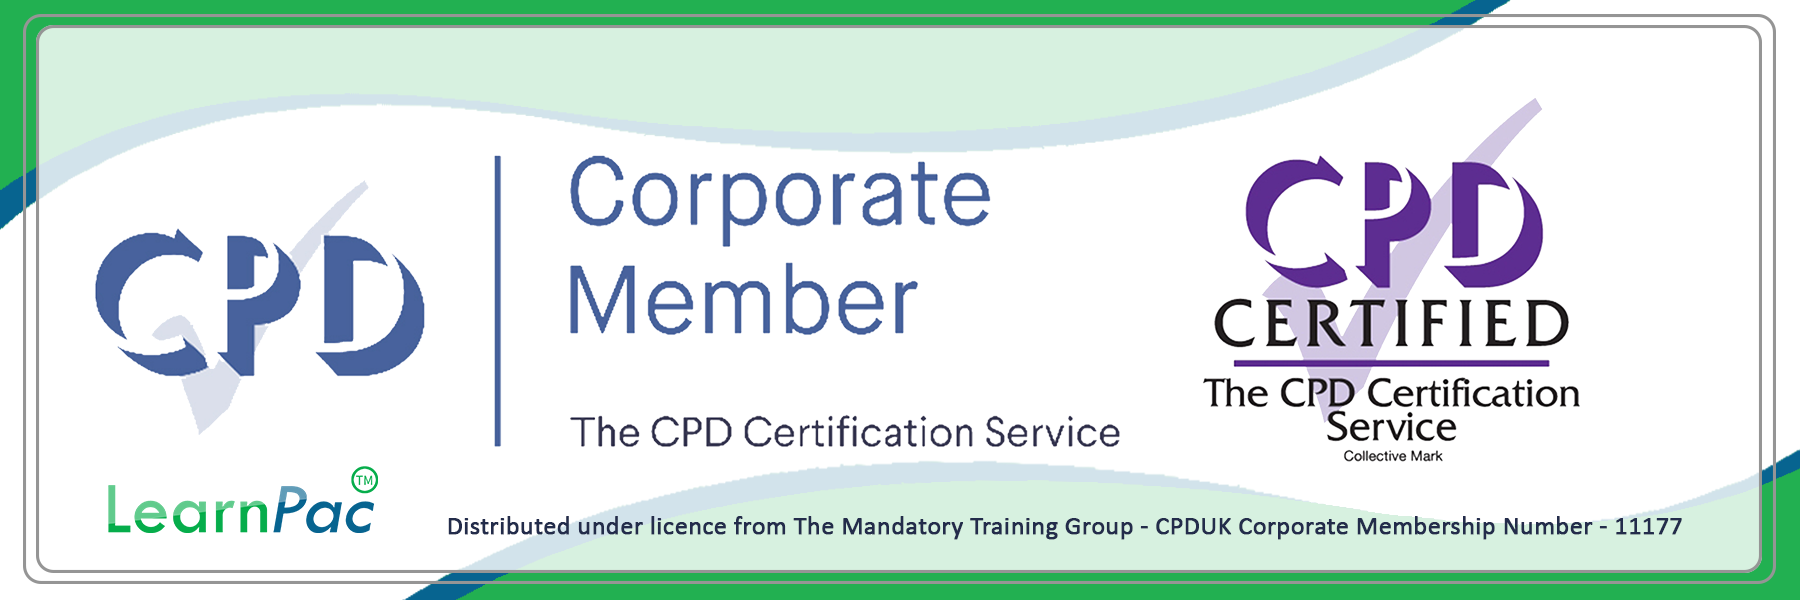 Tissue Viability Awareness - Online Training Course - CPDUK Certified - Learnpac System UK - (2)